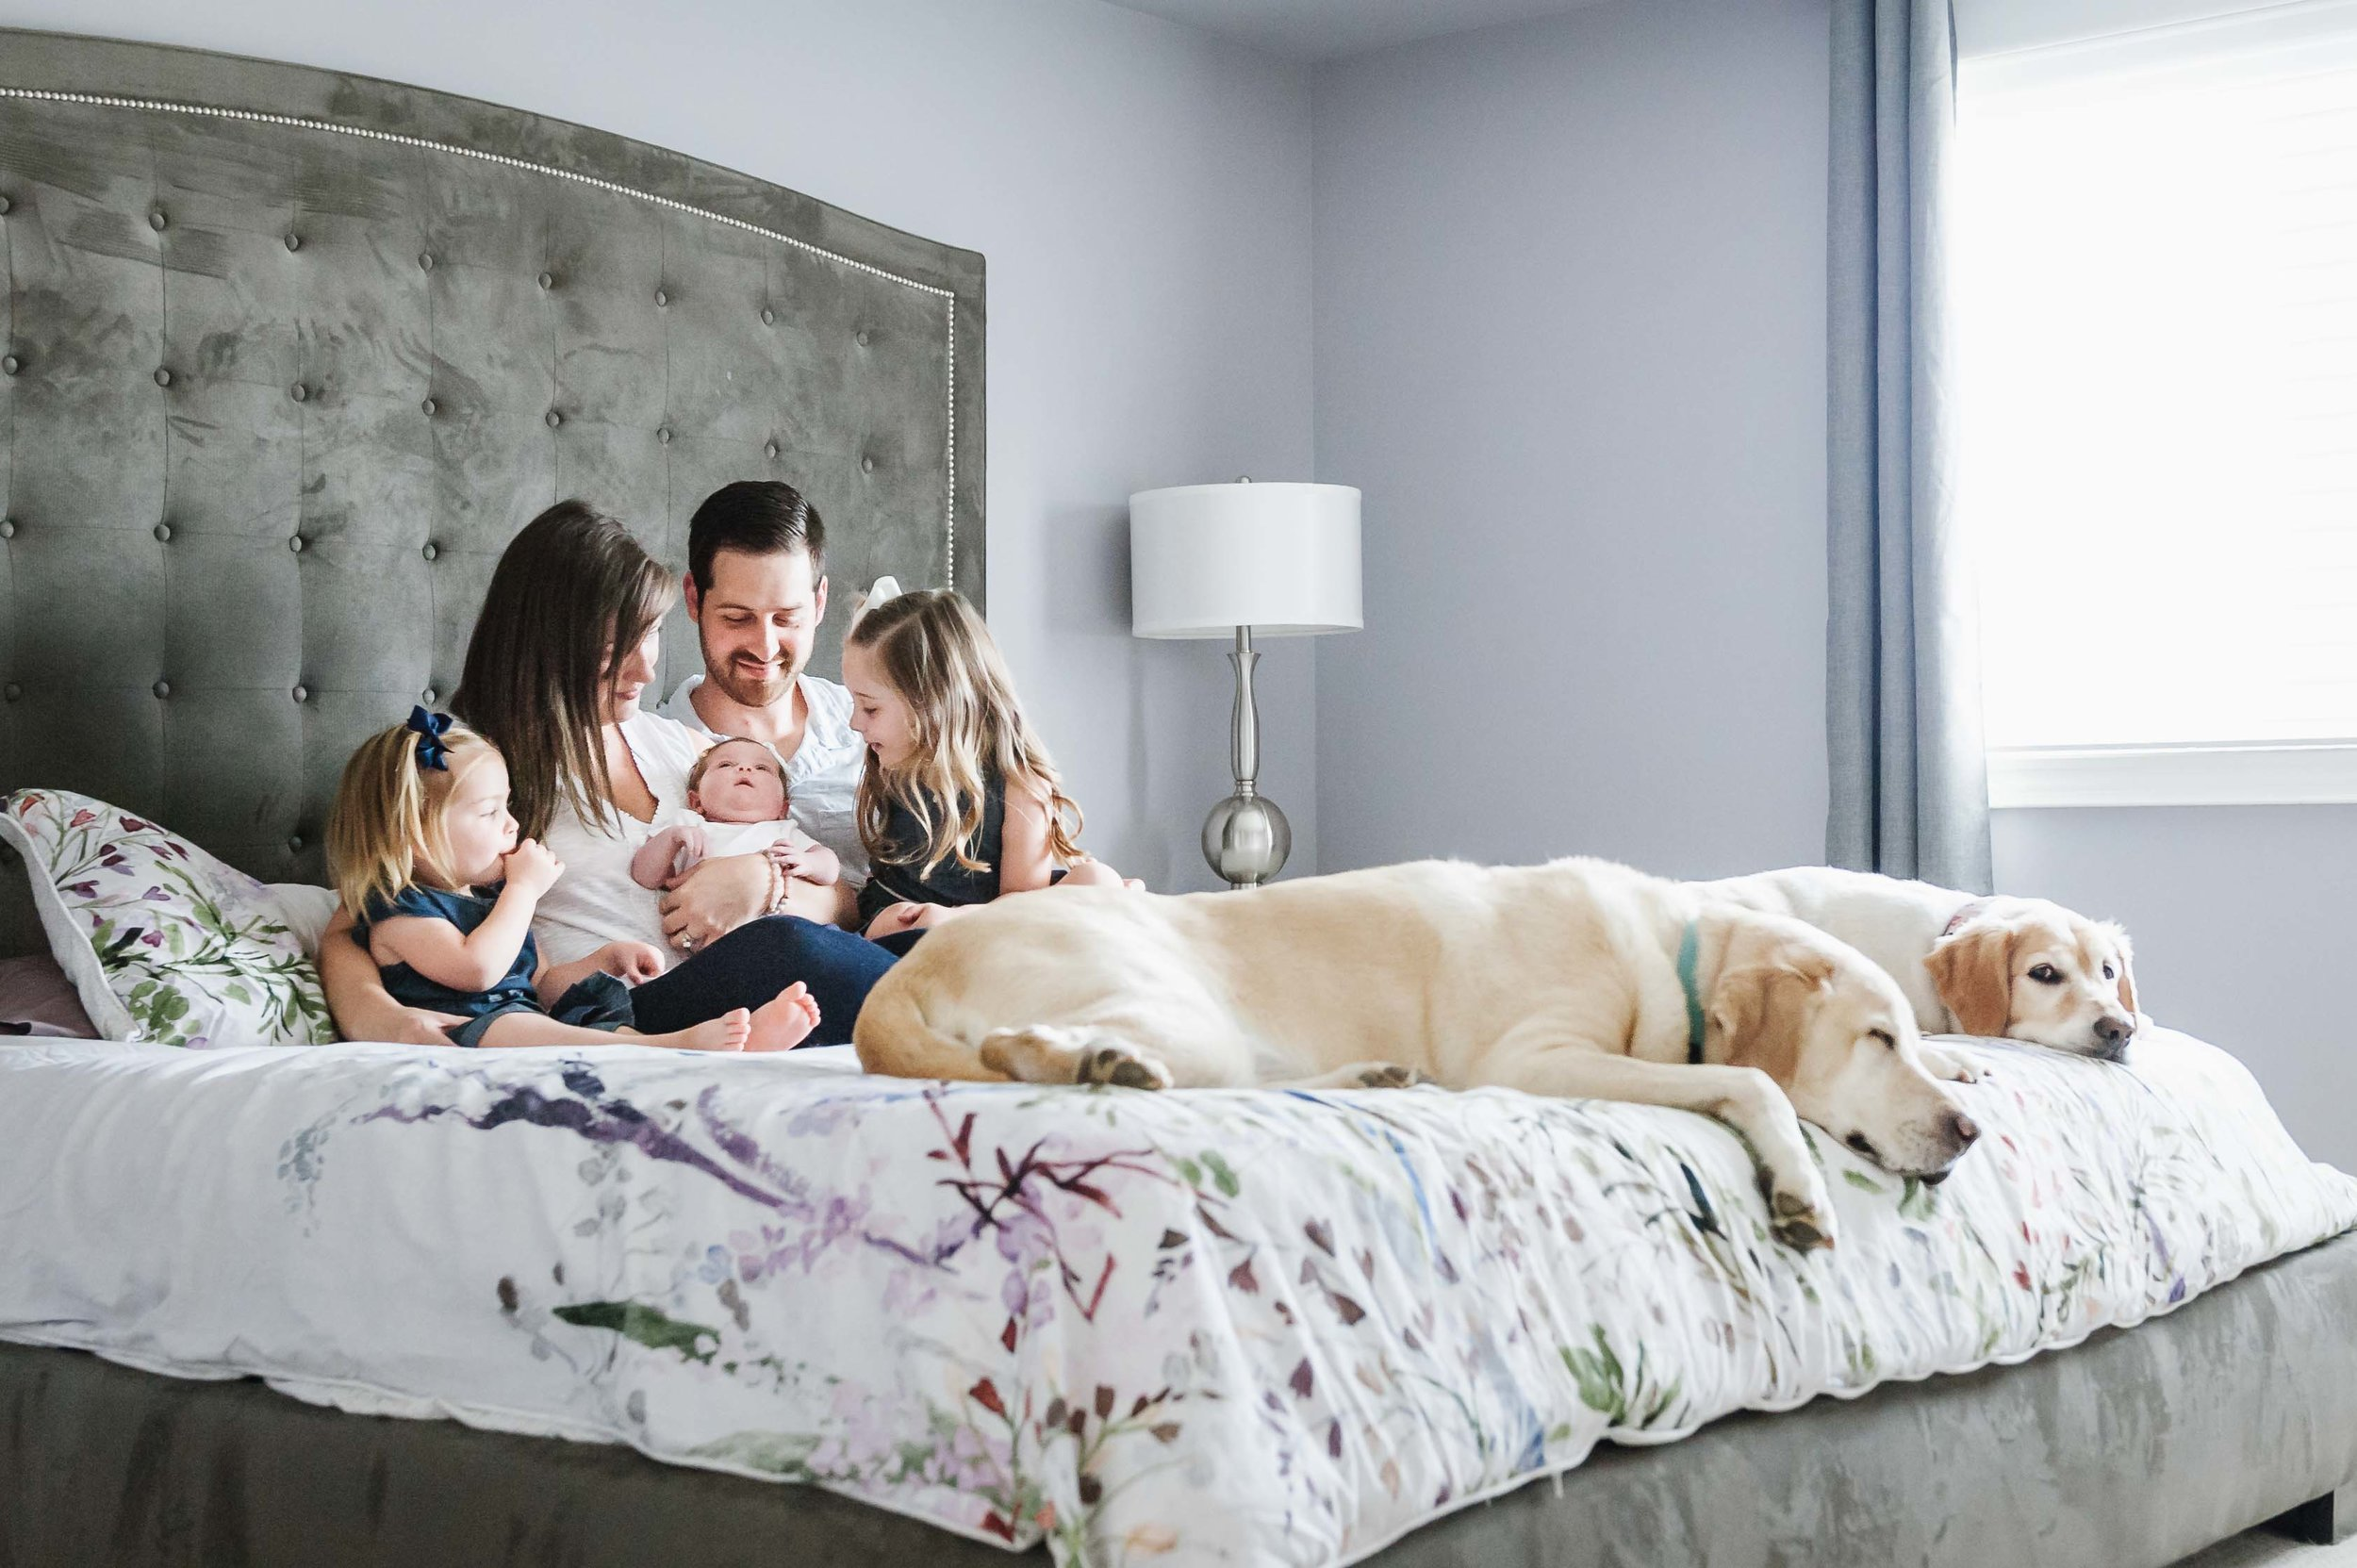 Family with new baby girl and dogs sitting on bed in Fonhill, Niagara home